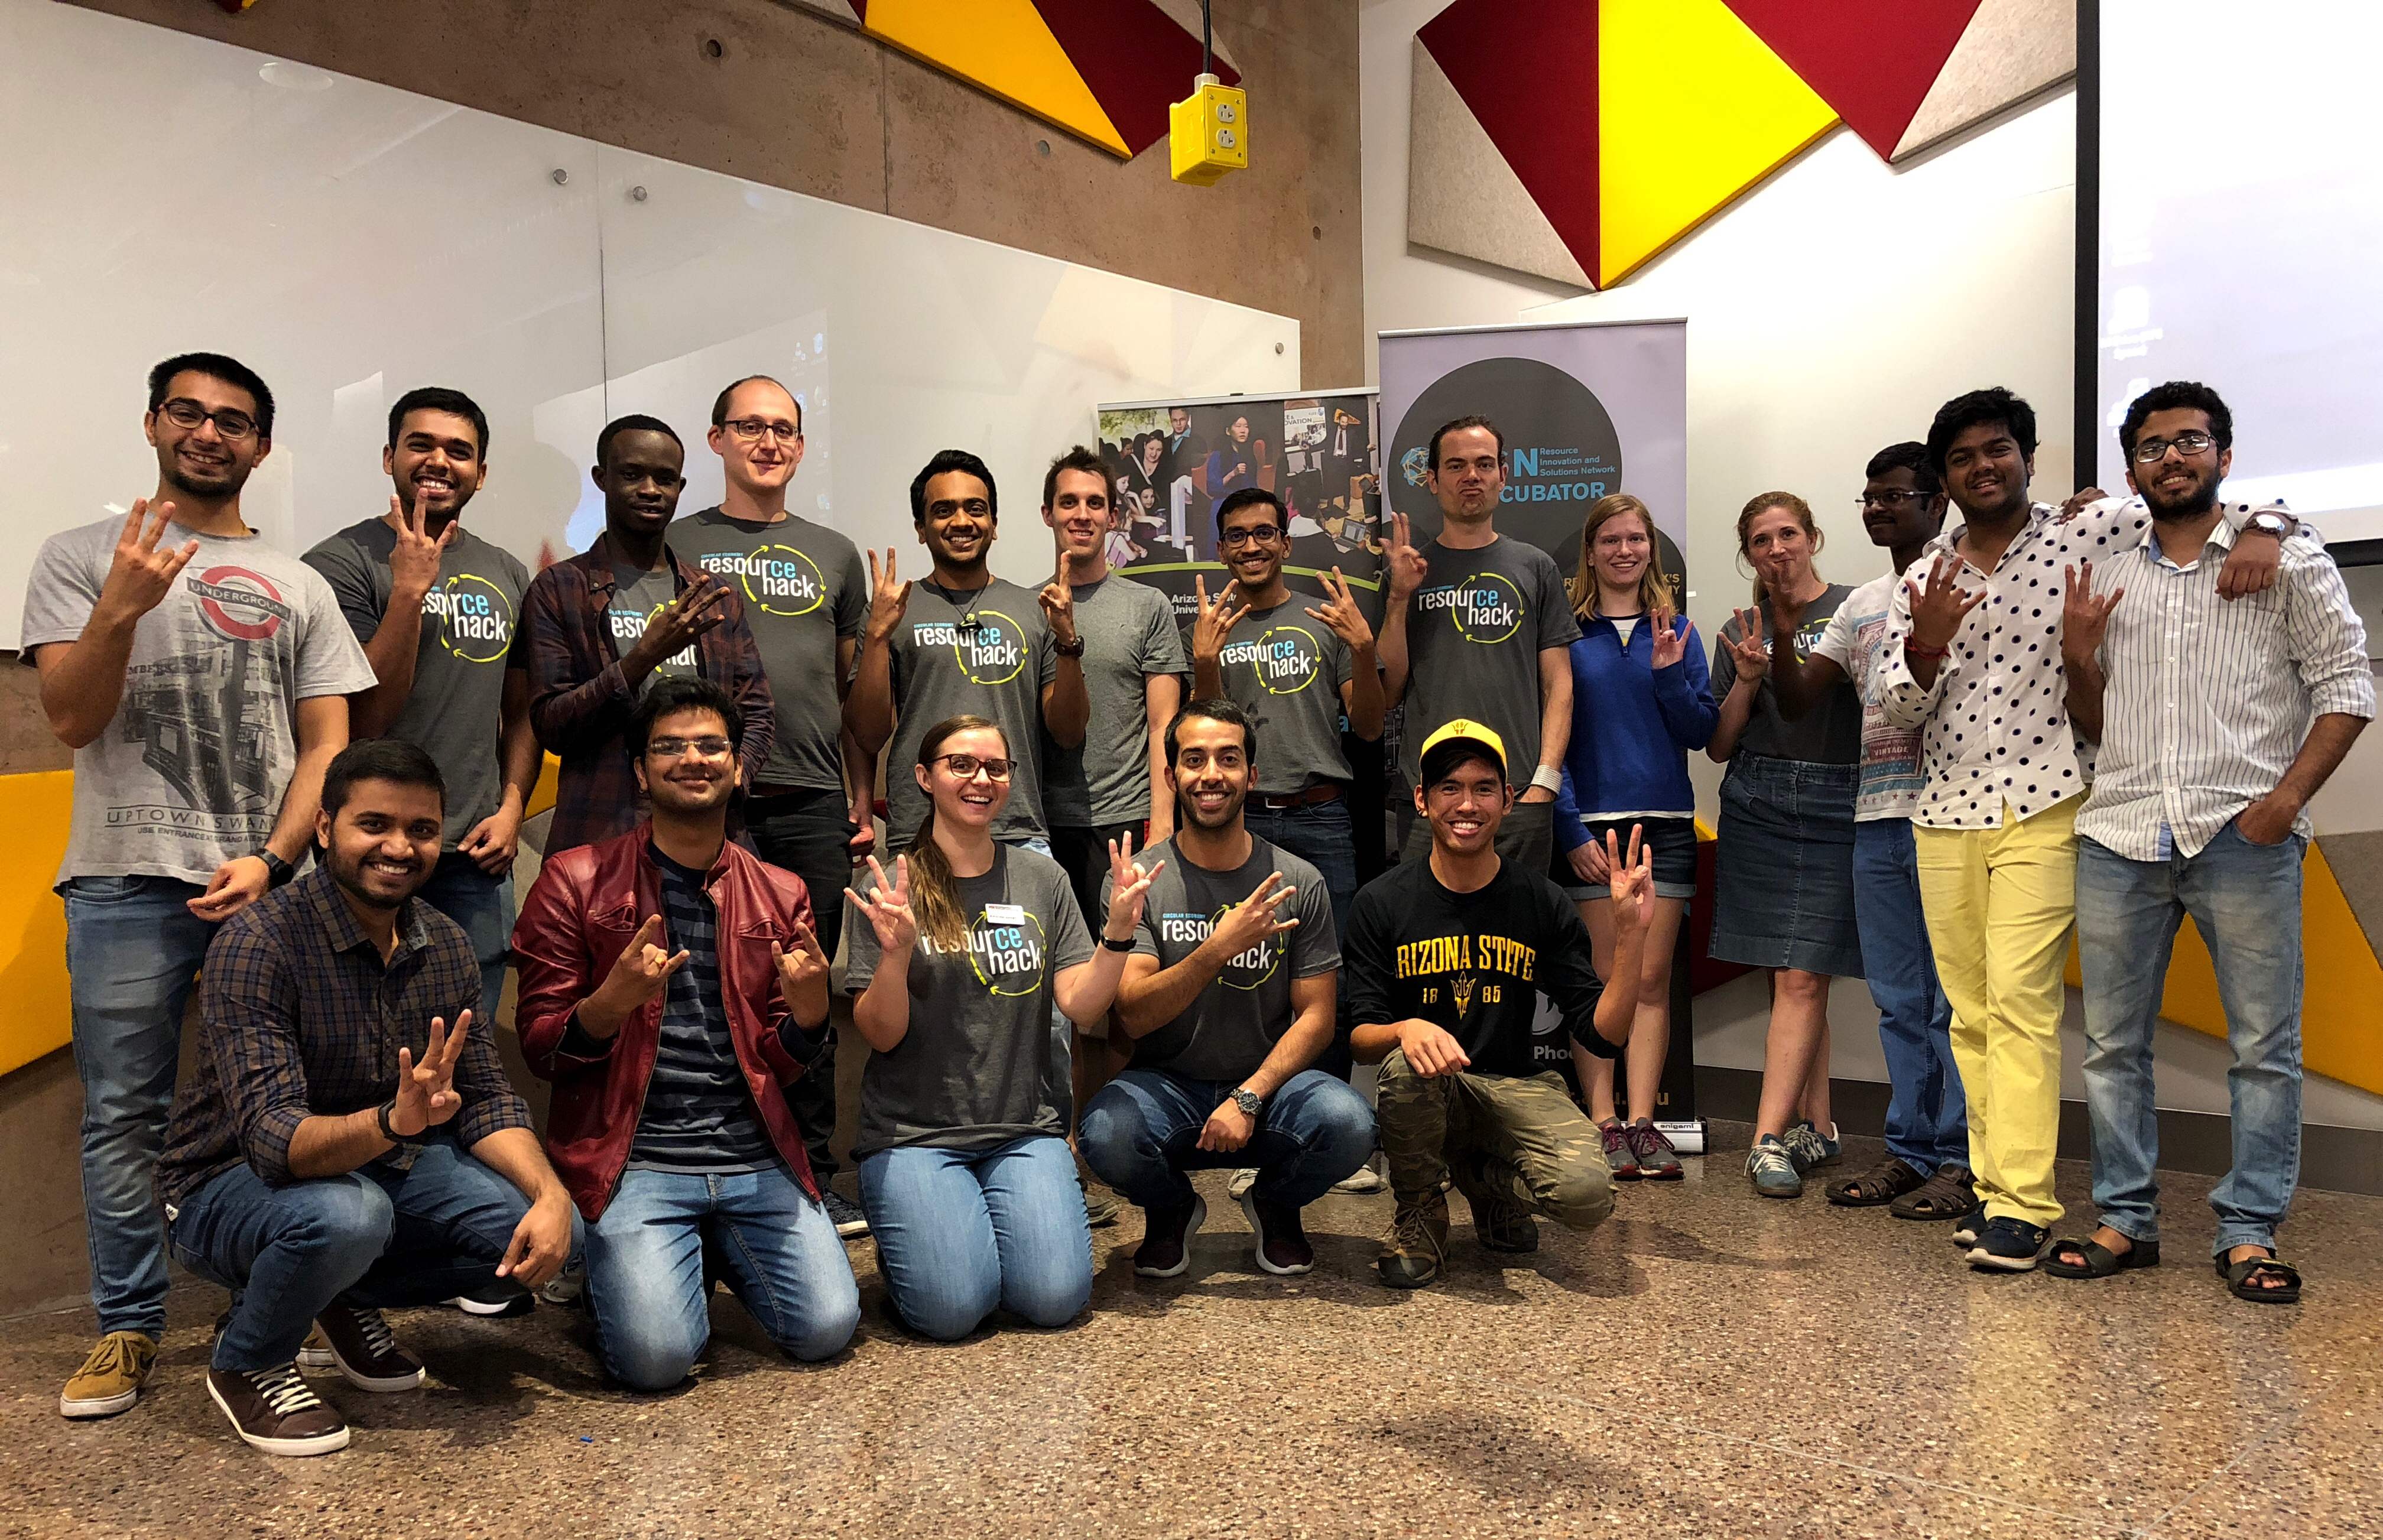 asu, unsw students innovate to create zero waste | asu now: access